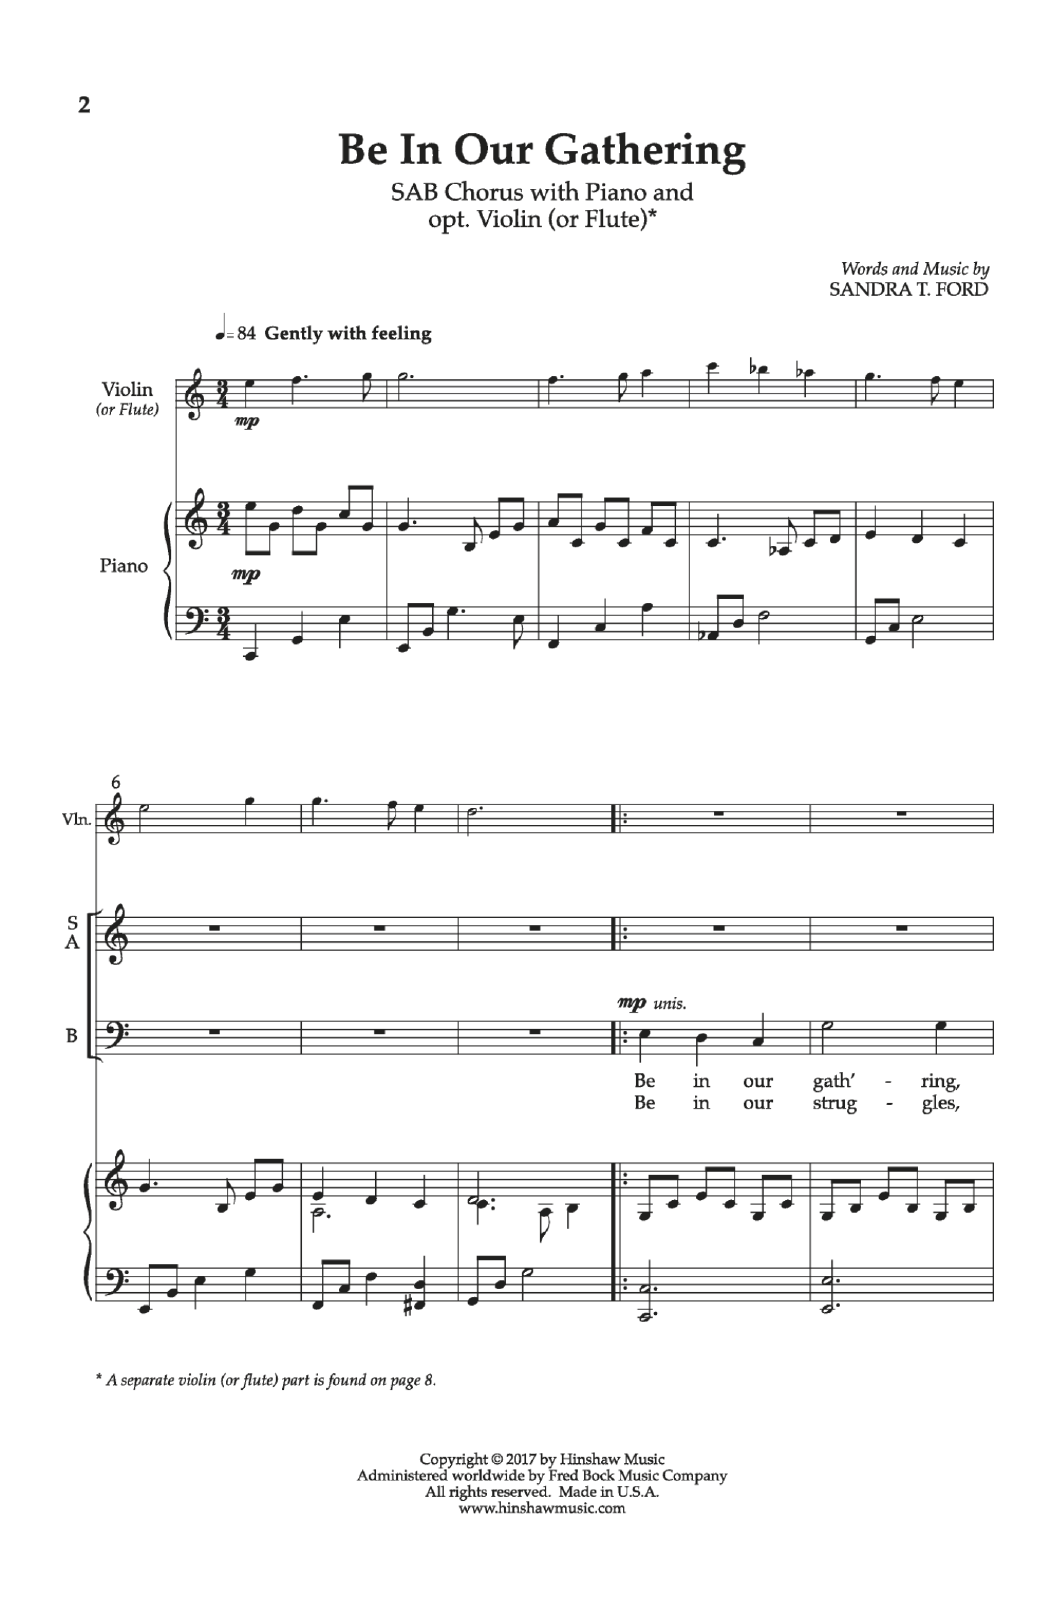 Be in Our Gathering Sheet Music